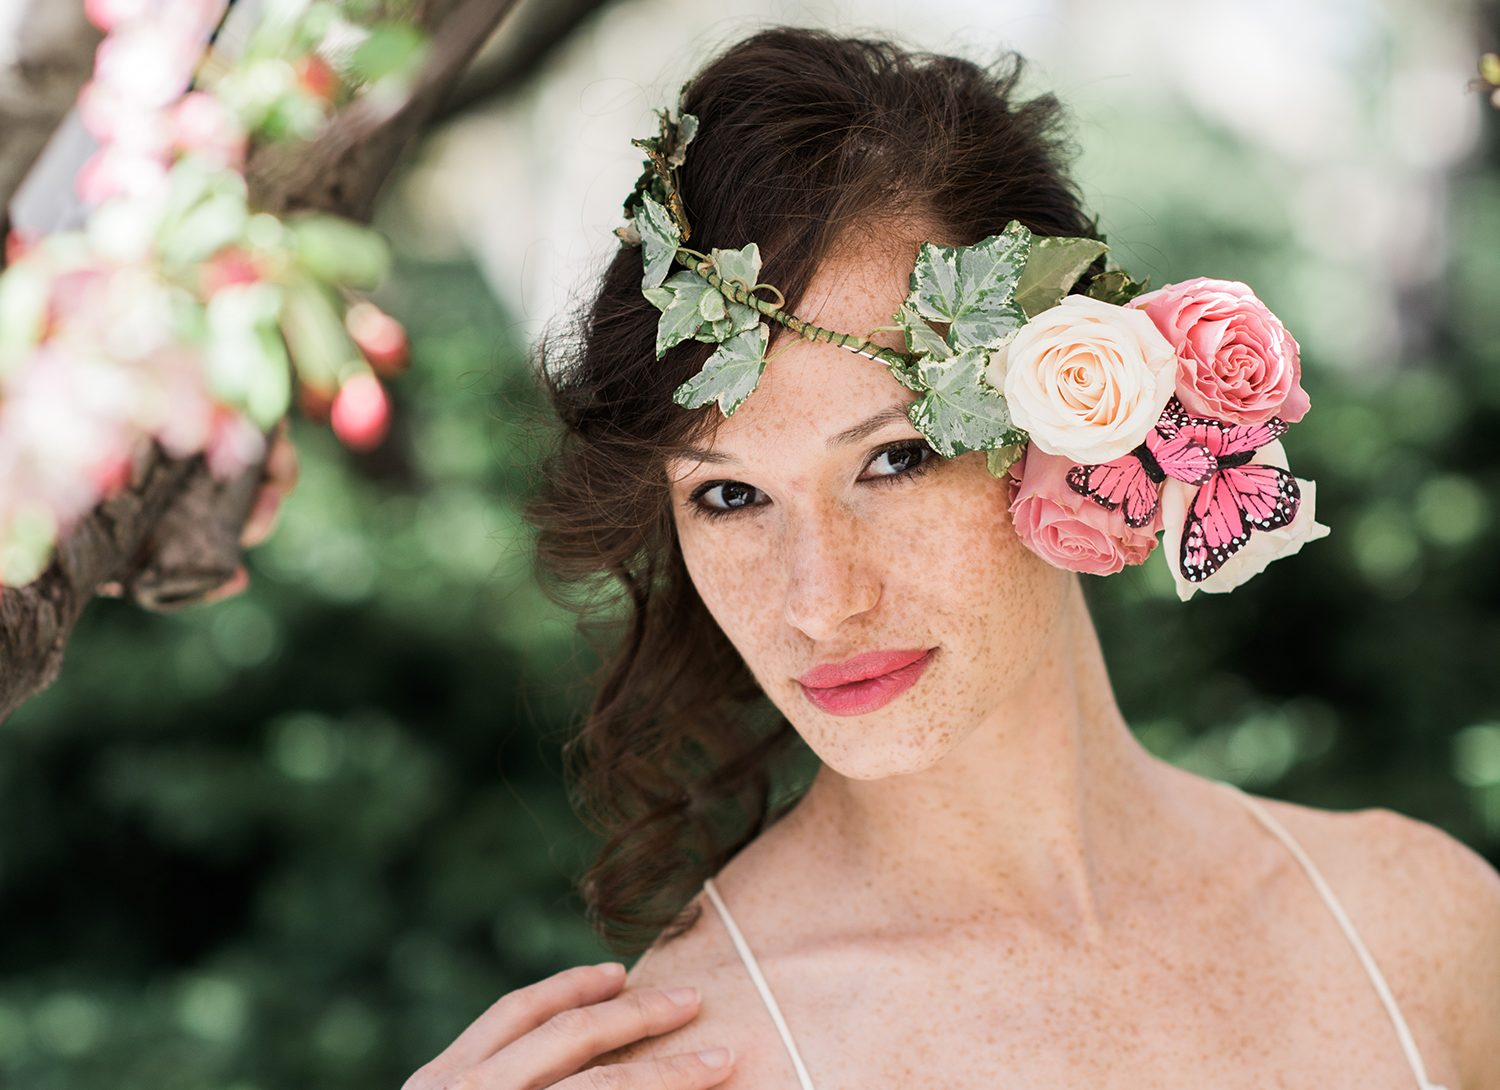 Spring flower crown for the whimsical bride by stellar style events spring flower crown for the whimsical bride by stellar style events izmirmasajfo